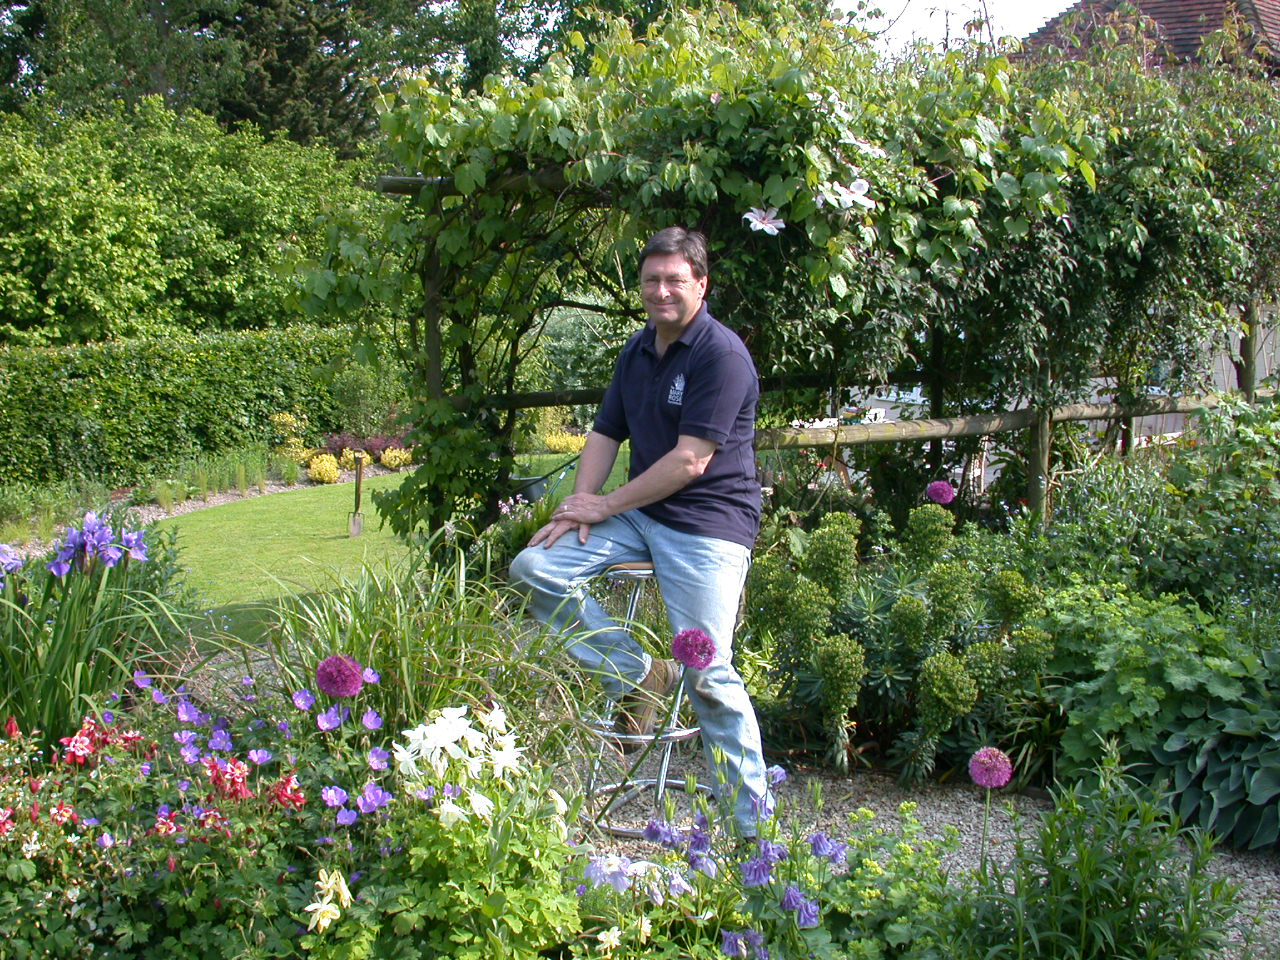 Alan Titchmarsh helping pollinators. Photo: Butterfly Conservation